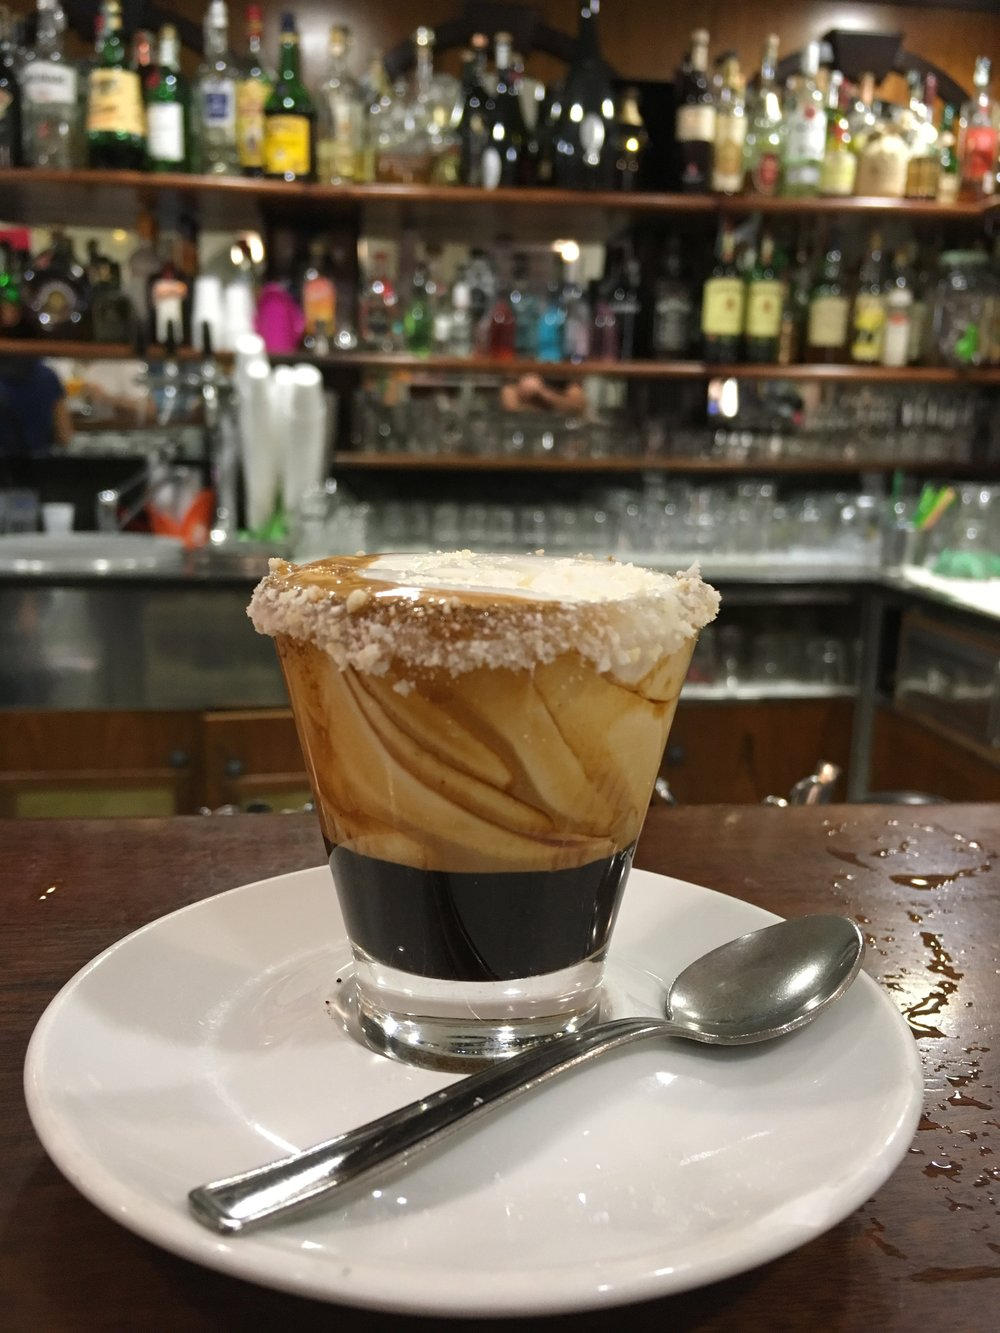 Caffetti—a treat only found at Caffe Ovidio in Sulmona—espresso topped with a flavored cream with crushed confetti. Way tastier than it should be.